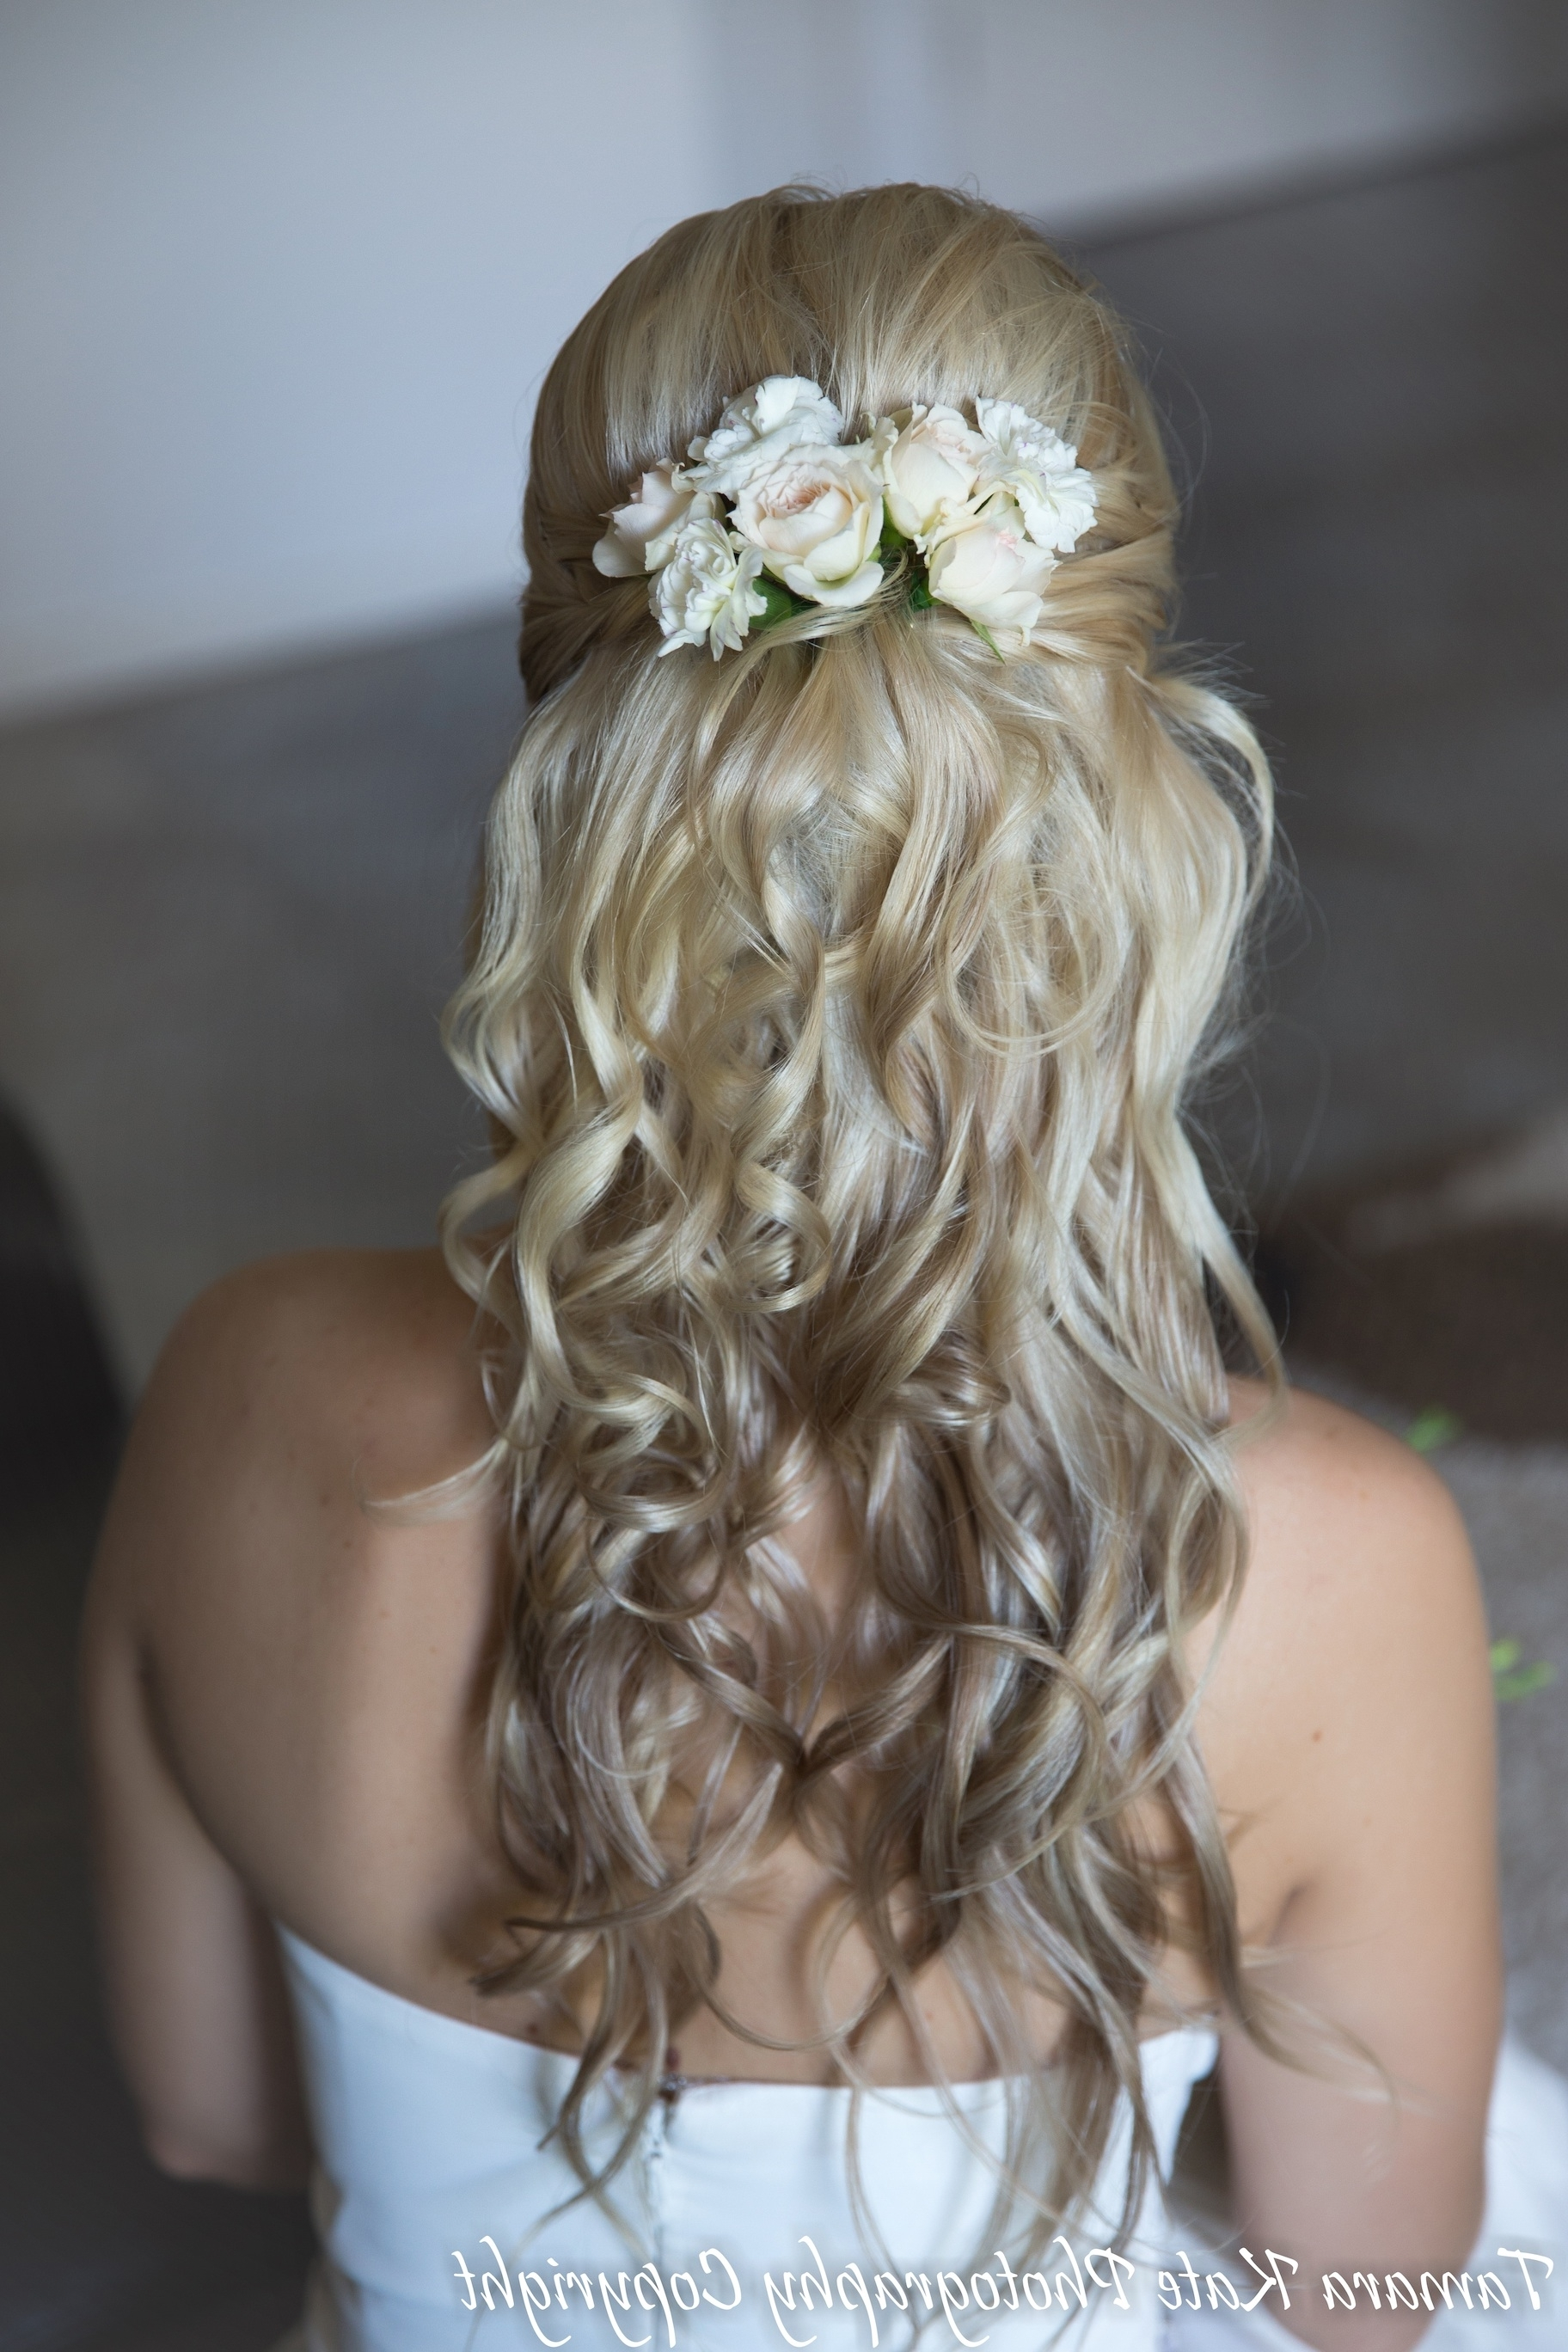 Fashionable Beach Wedding Hair For Bridesmaids Within Wedding Hairstyles For Brides With Long Hair – Hairstyle For Women & Man (View 11 of 15)